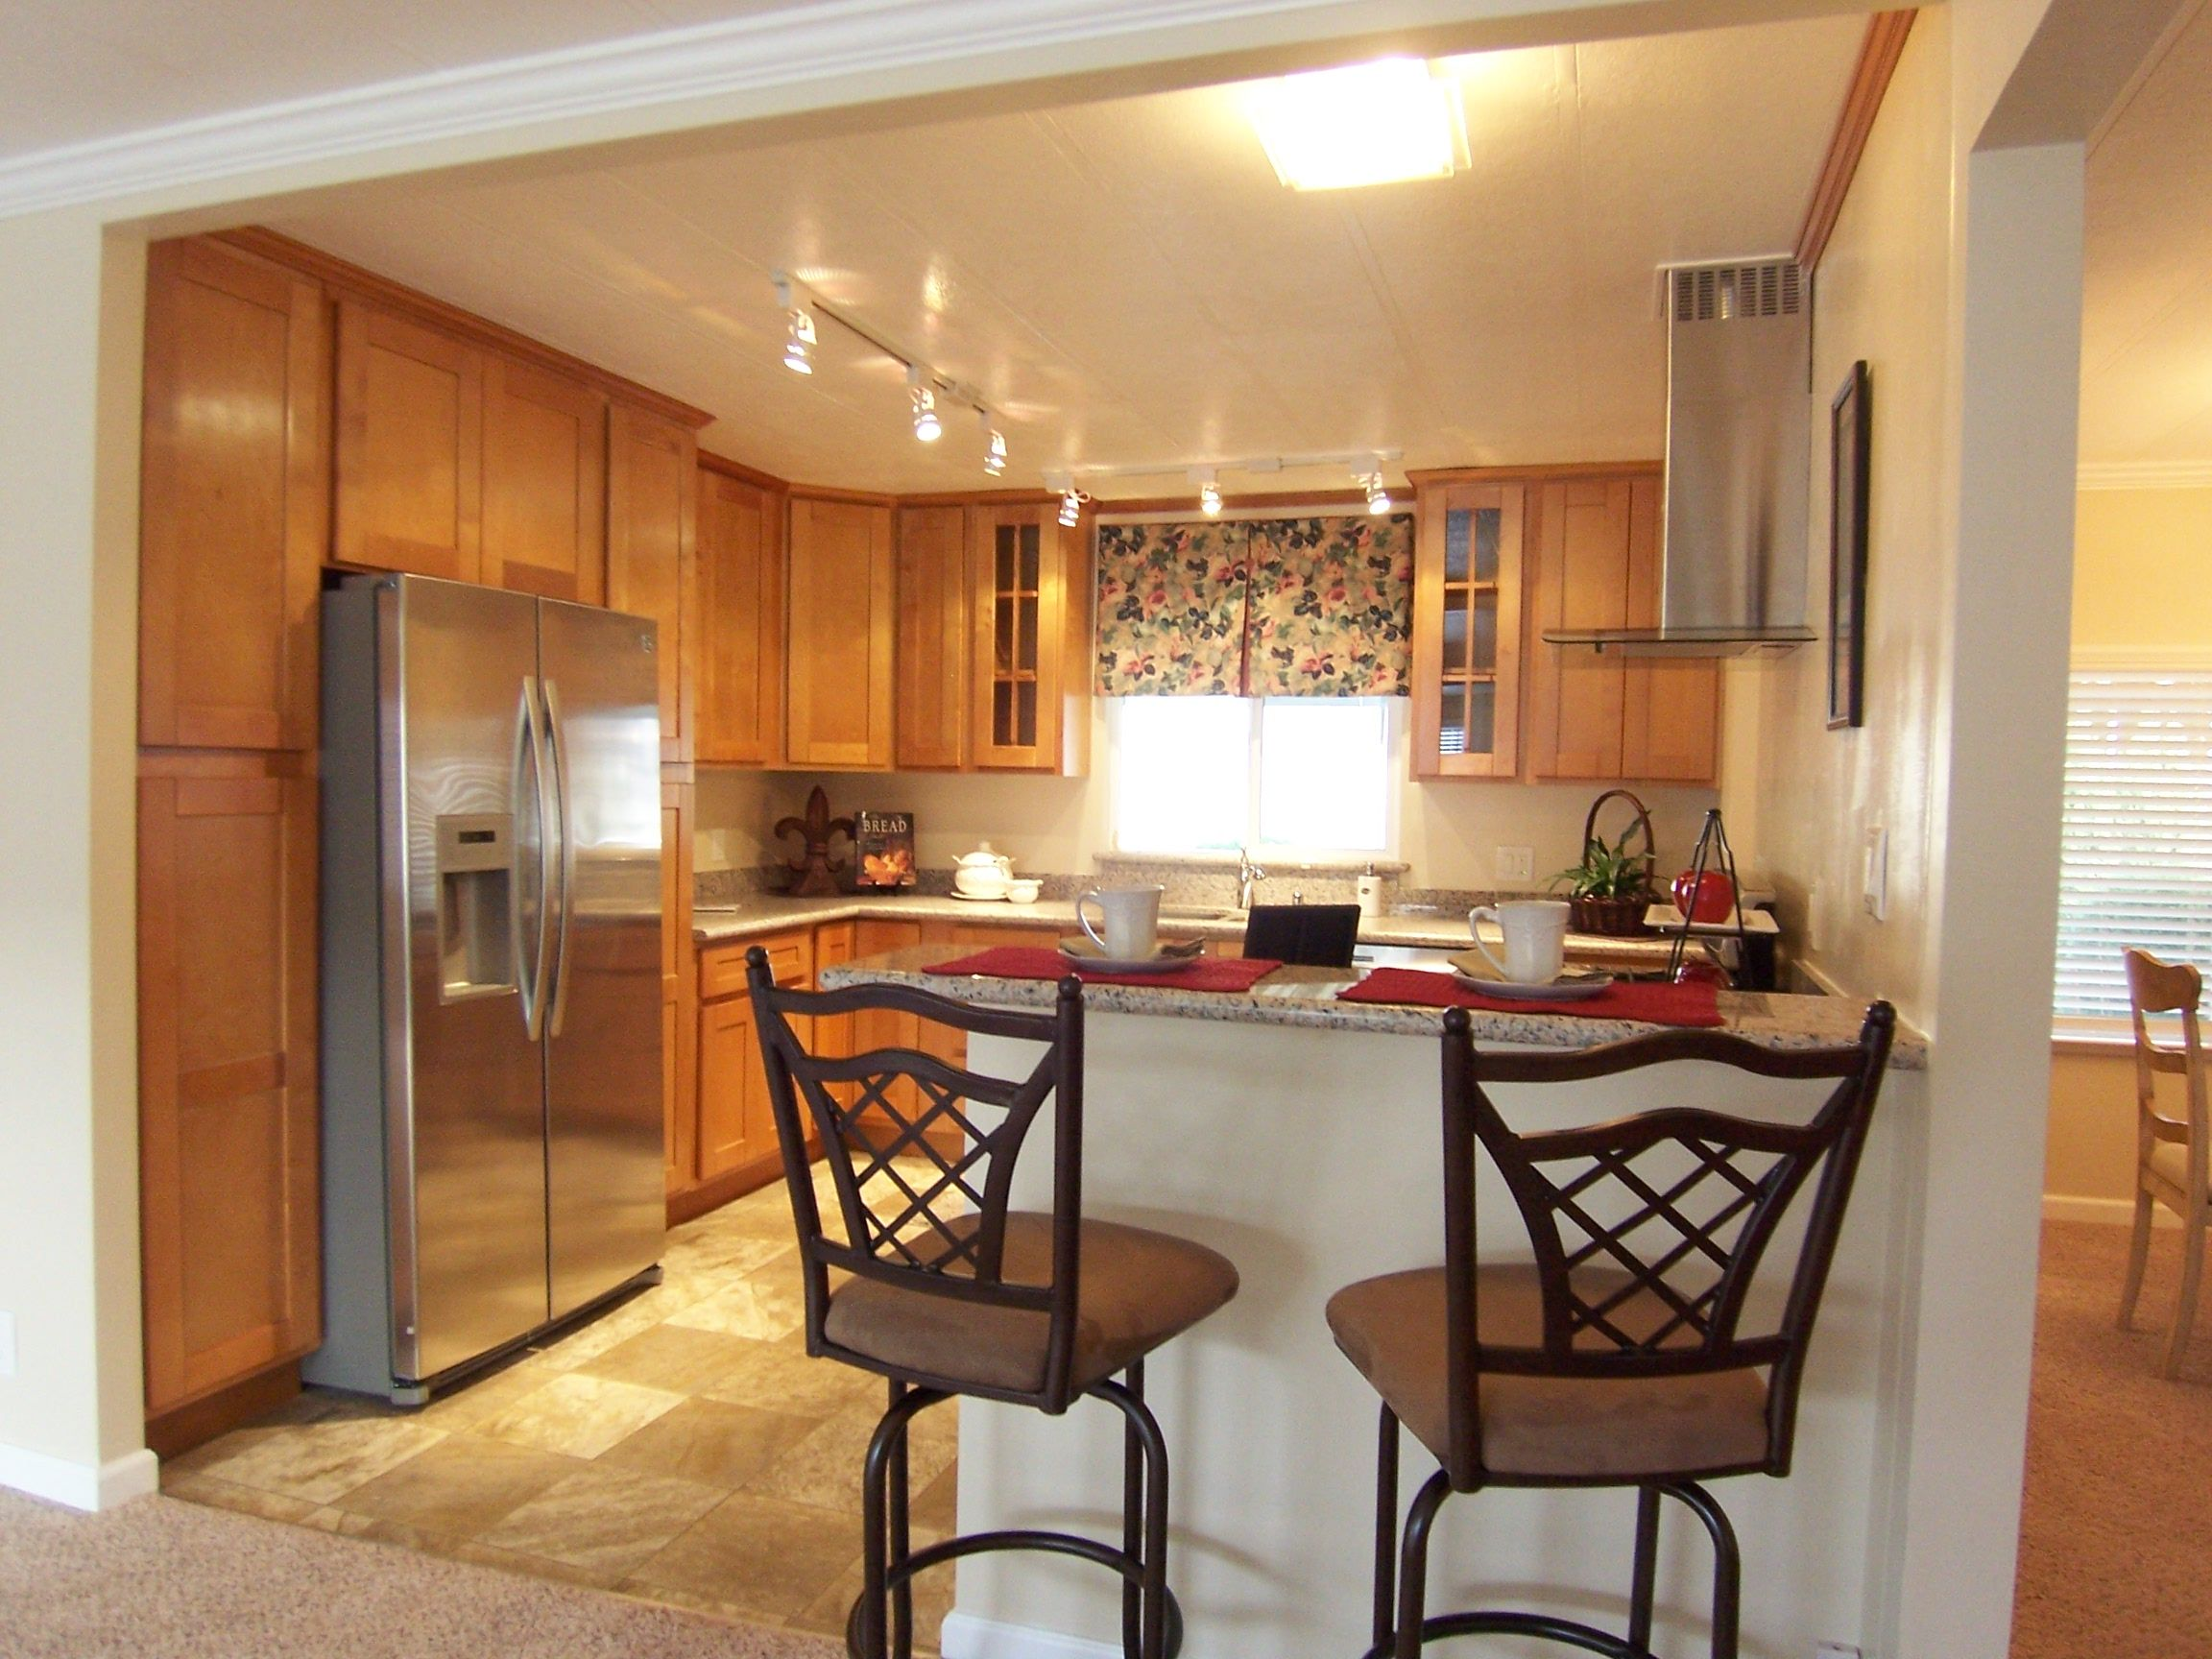 This Is Arm Homes Latest Rebuilt Manufactured Home The Kitchen Was Gutted Down To The Studs Then Sheetrocked New Cus Manufactured Home Custom Cabinets Home